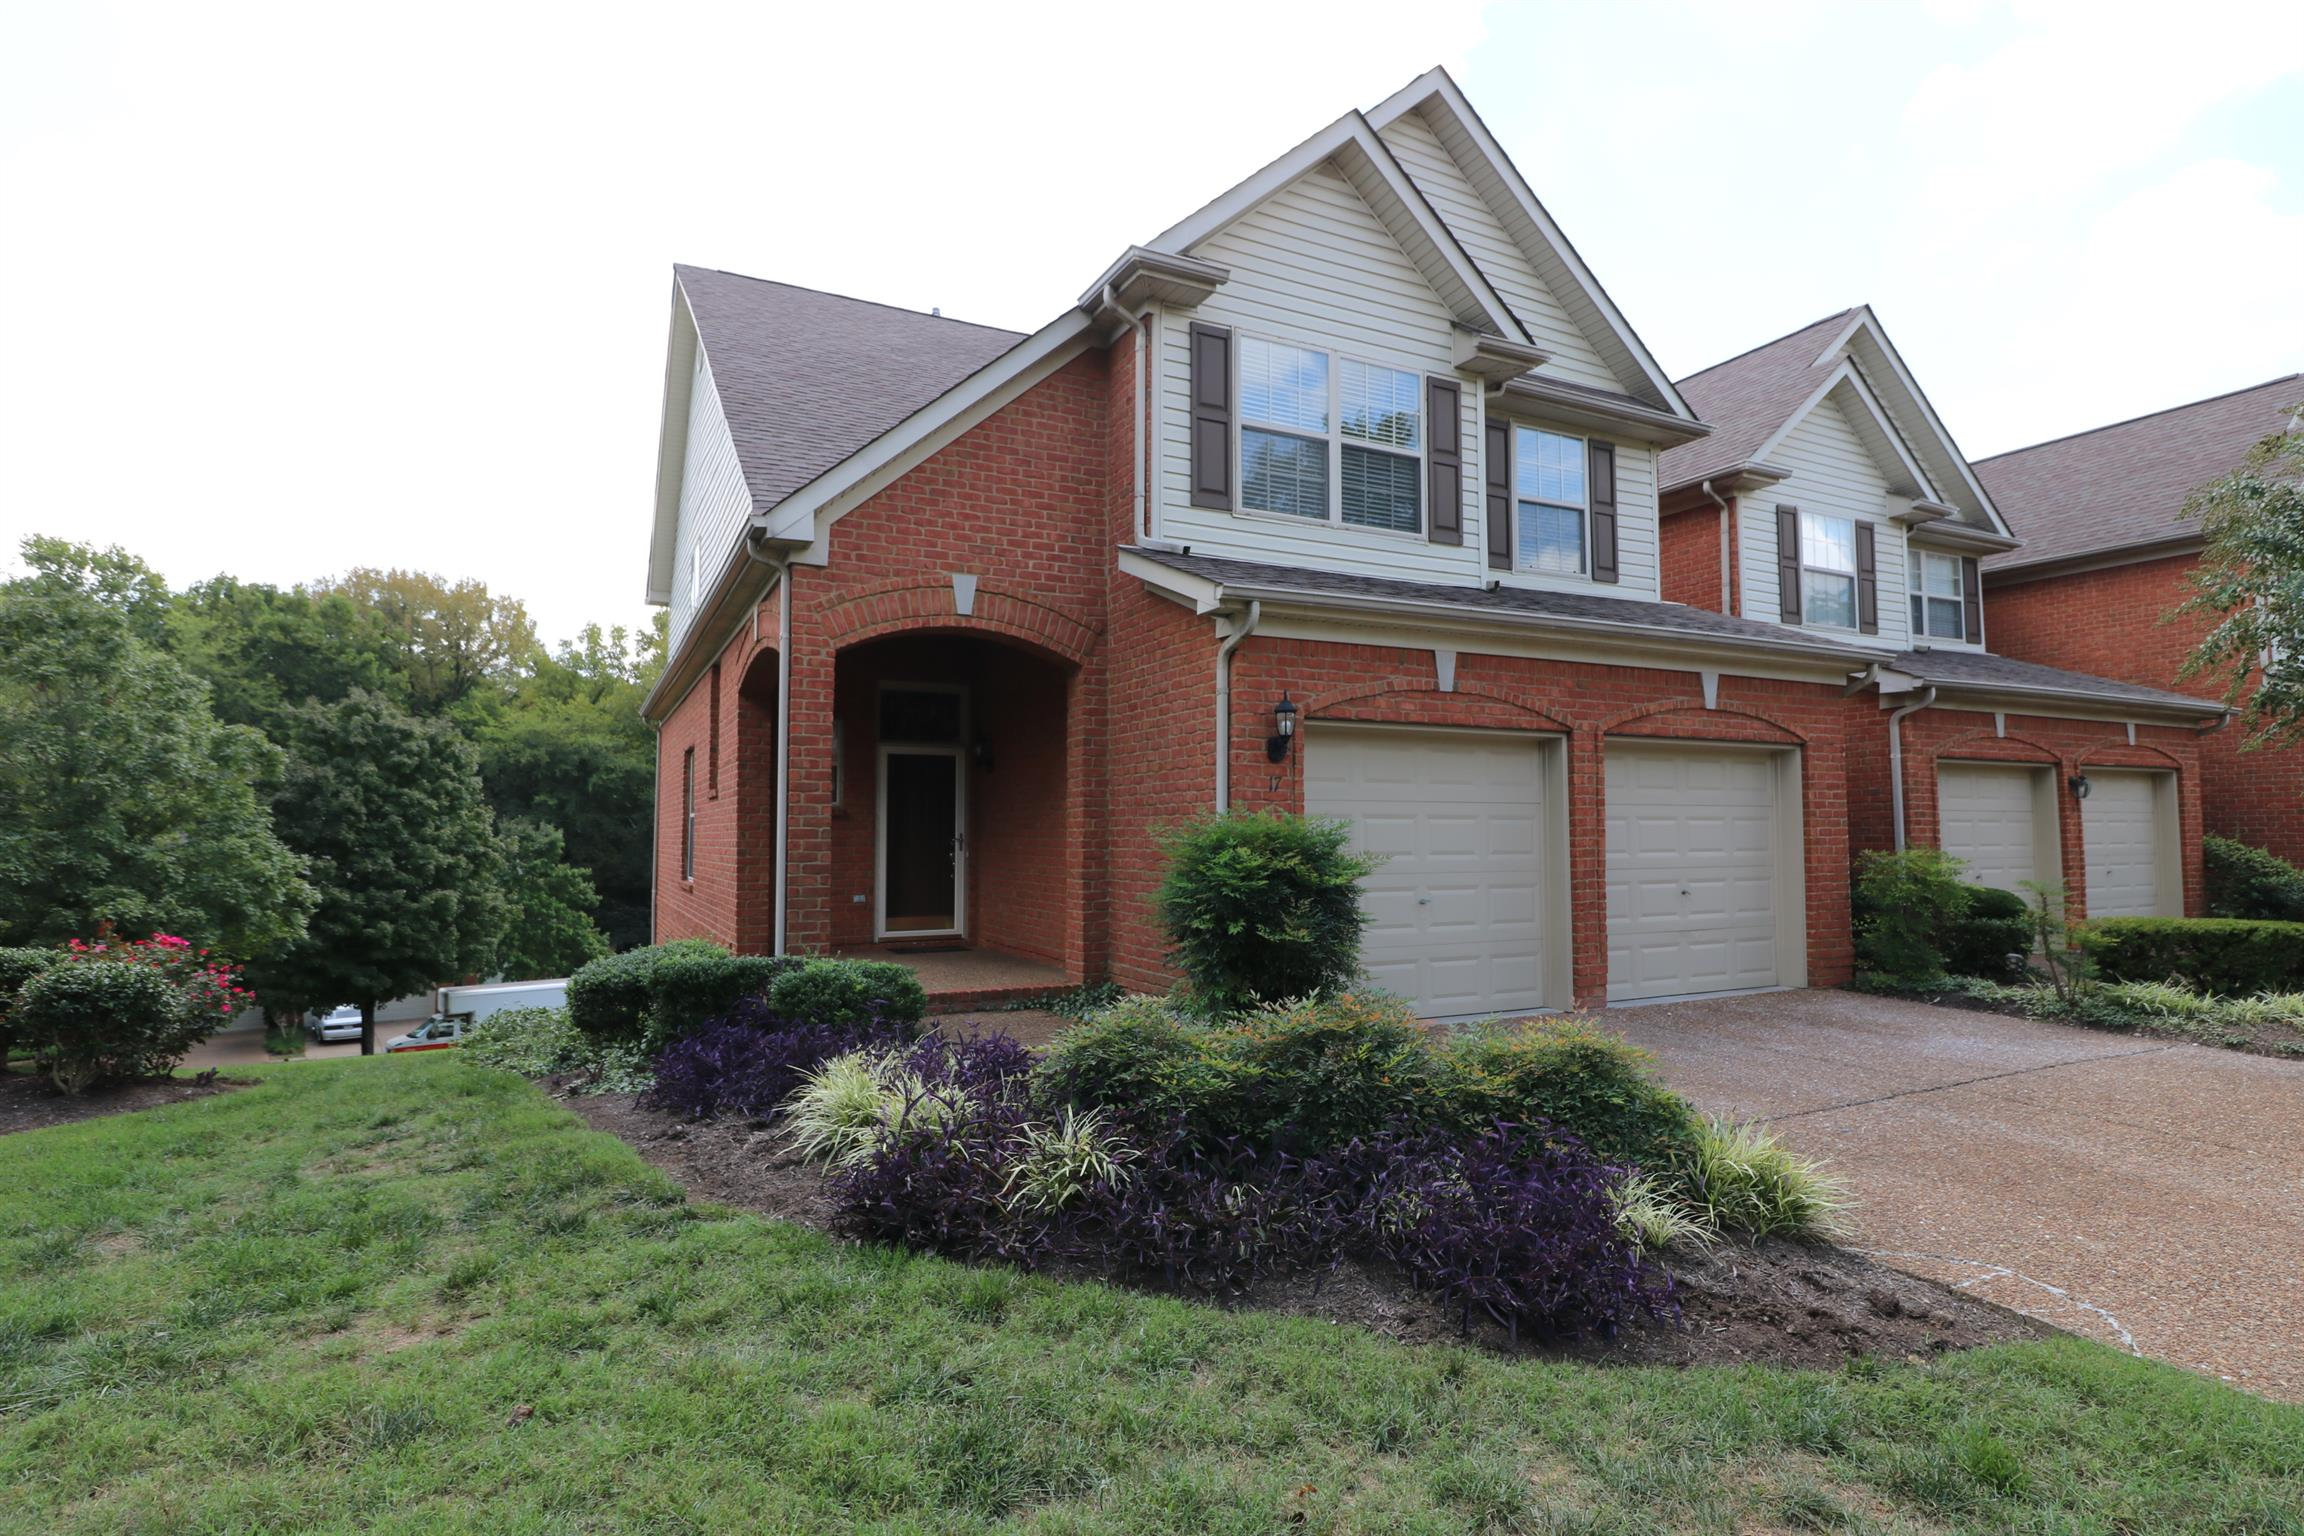 641 Old Hickory Blvd Unit 17 17, Brentwood, TN 37027